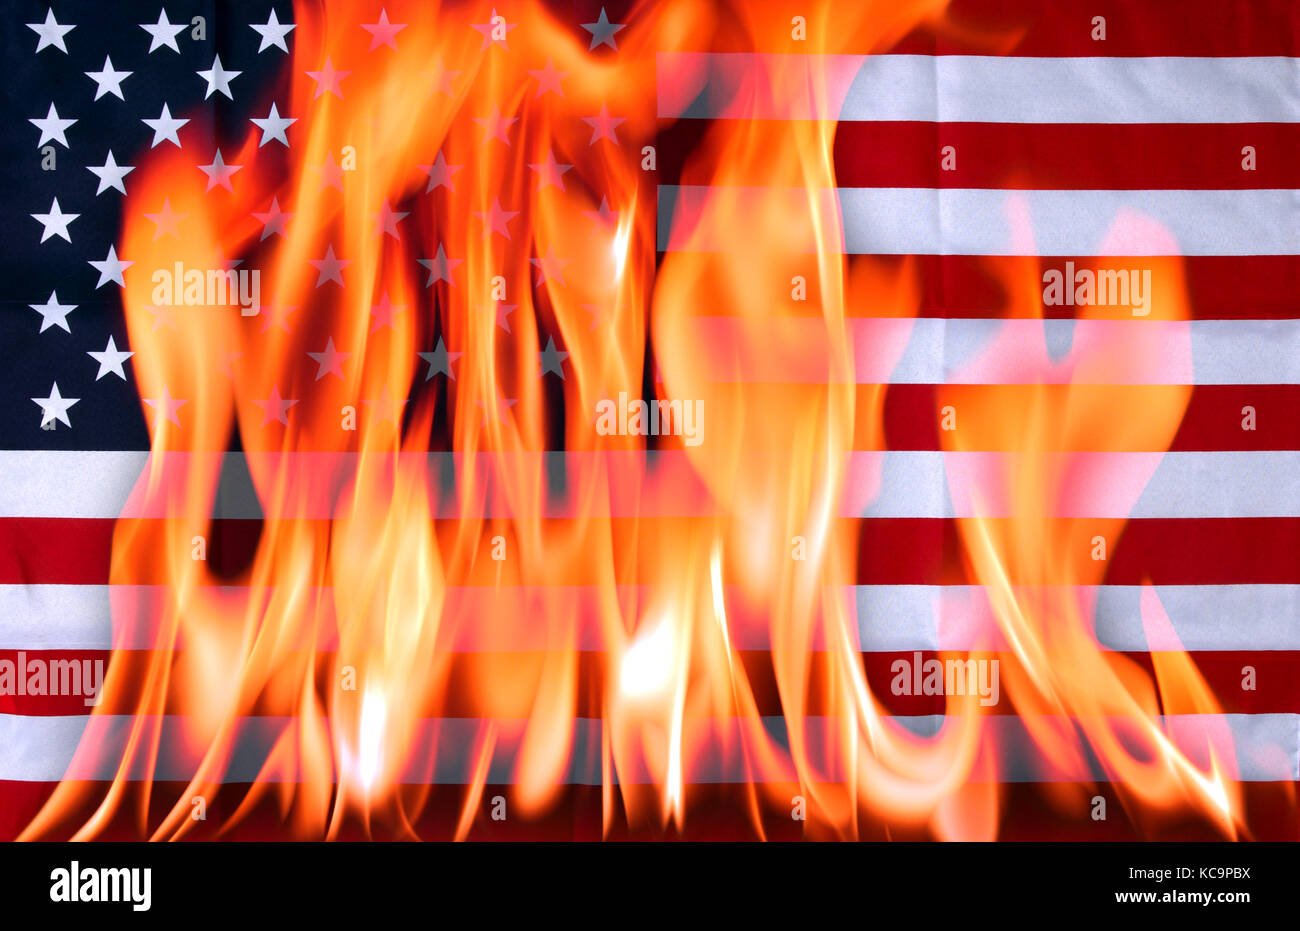 American Flag Fire Stock Photos Amp American Flag Fire Stock